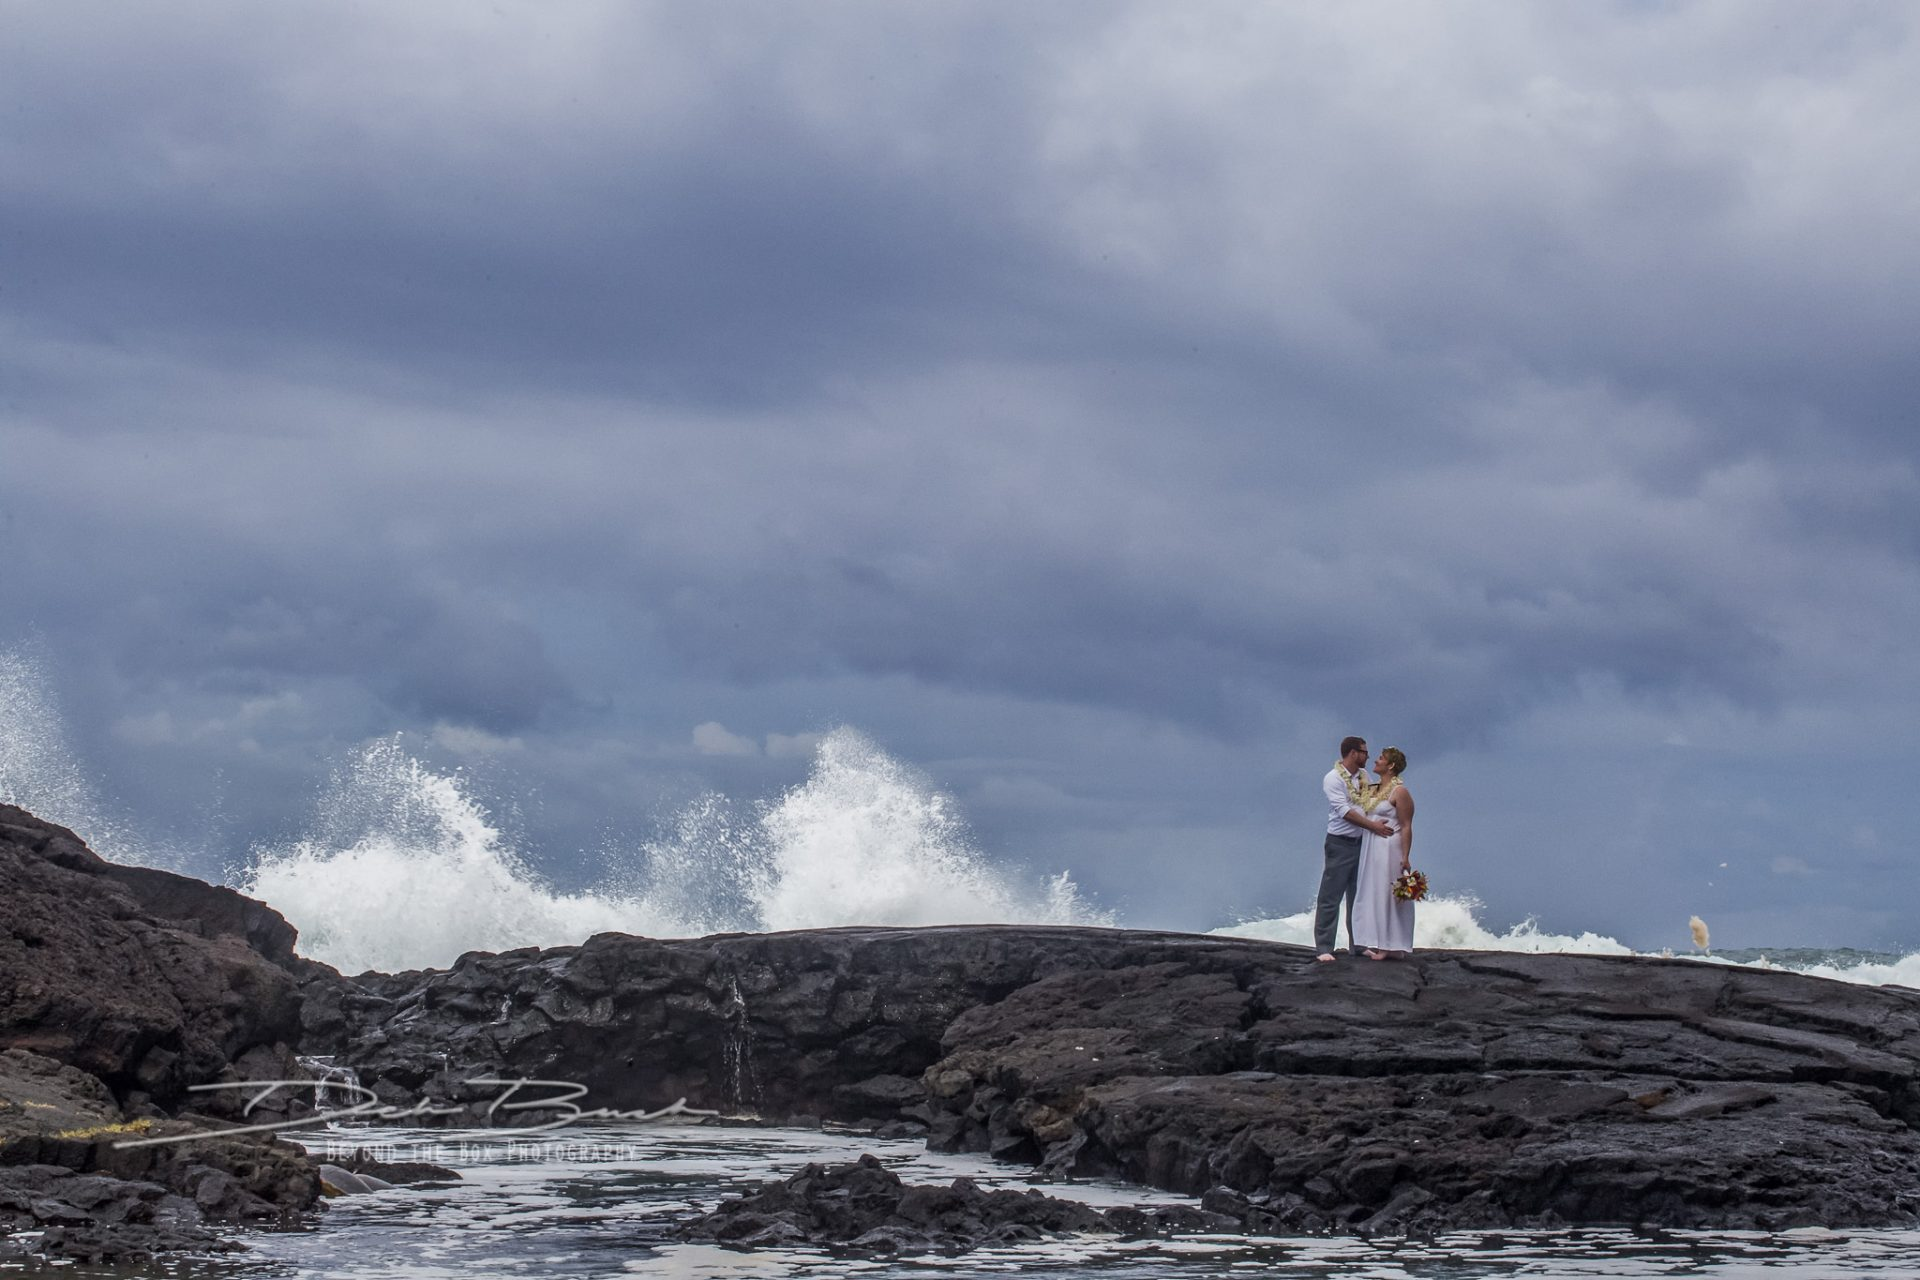 Crashing waves hawaii adventure elopement